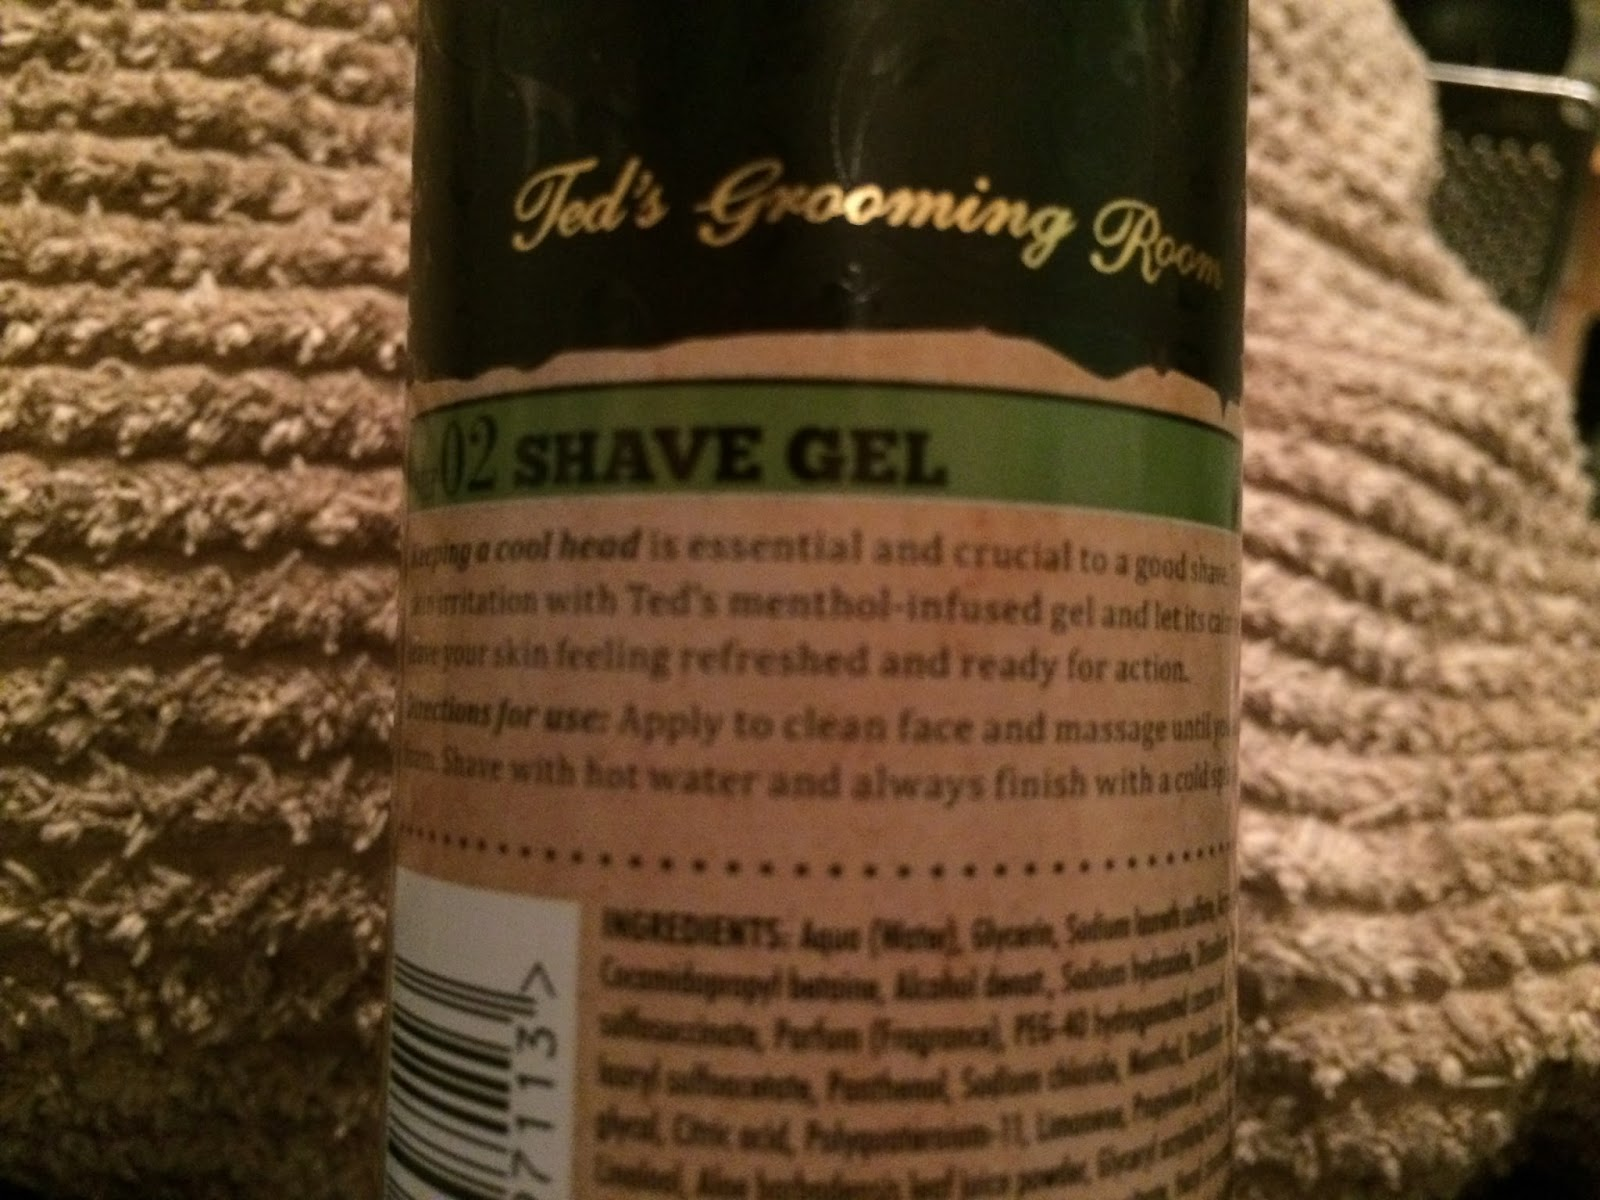 Ted's Grooming Room - Step 02 Shave Gel